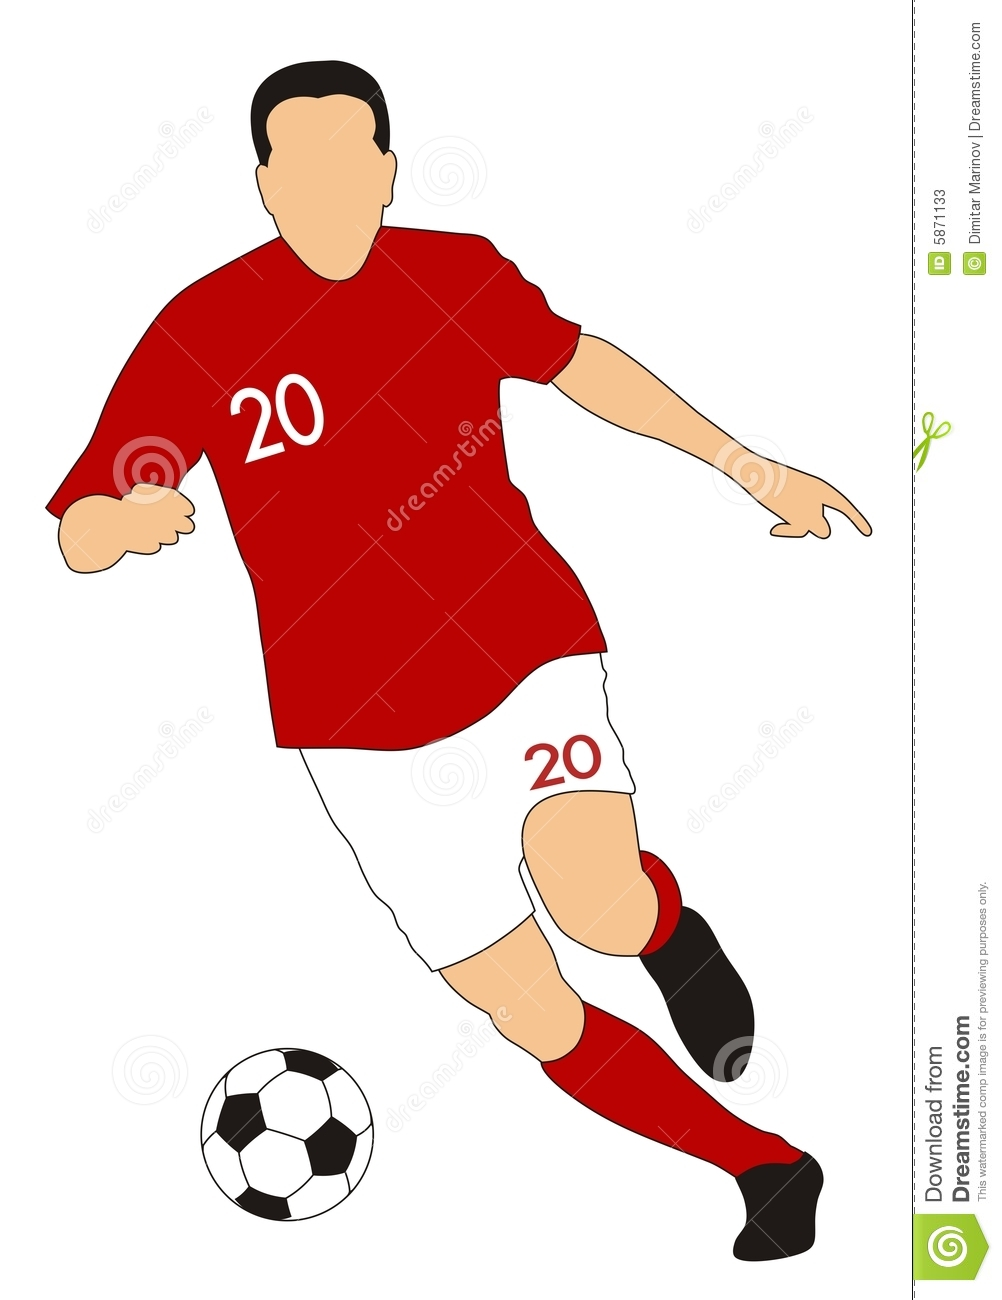 Abstract vector illustration of an footballer.